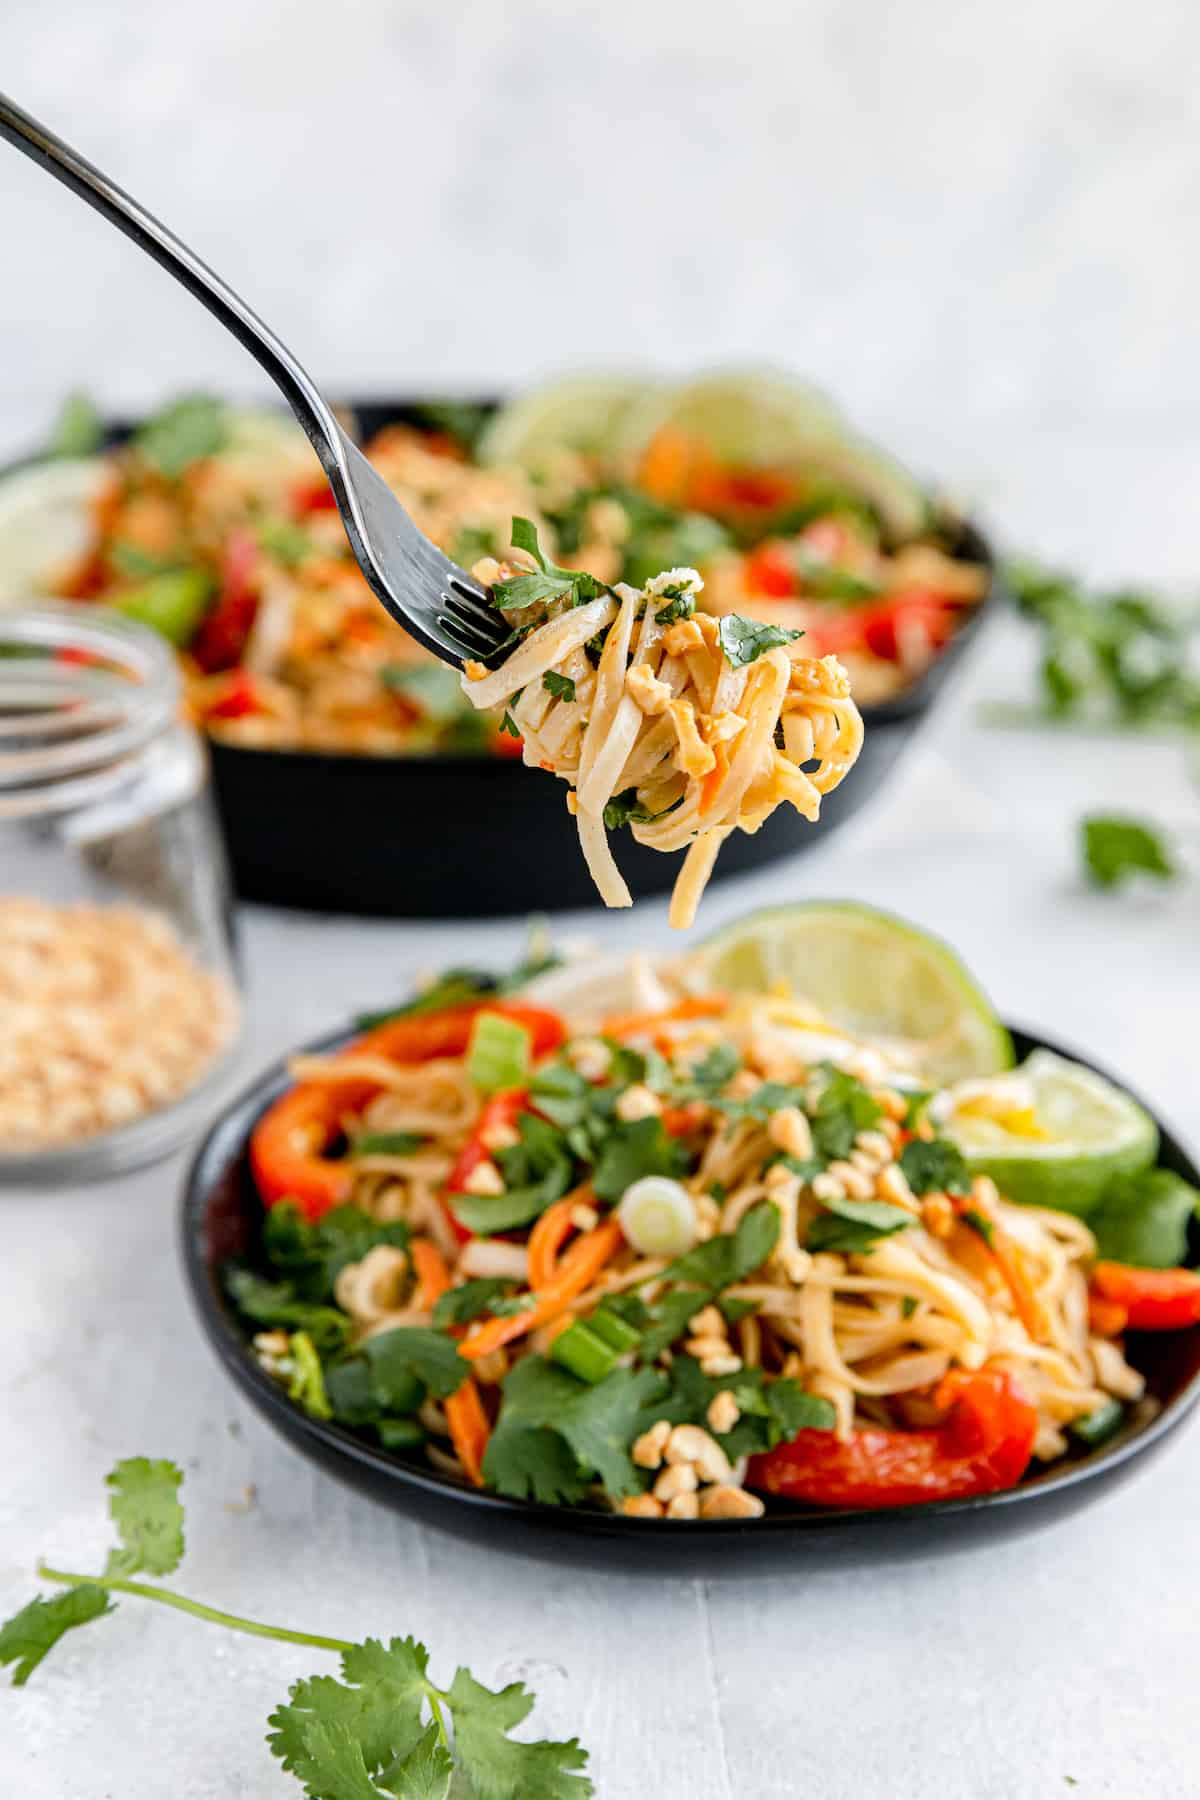 A Bite of Pad Thai on a Fork Hovering Above a Bowl Filled with a Full Serving